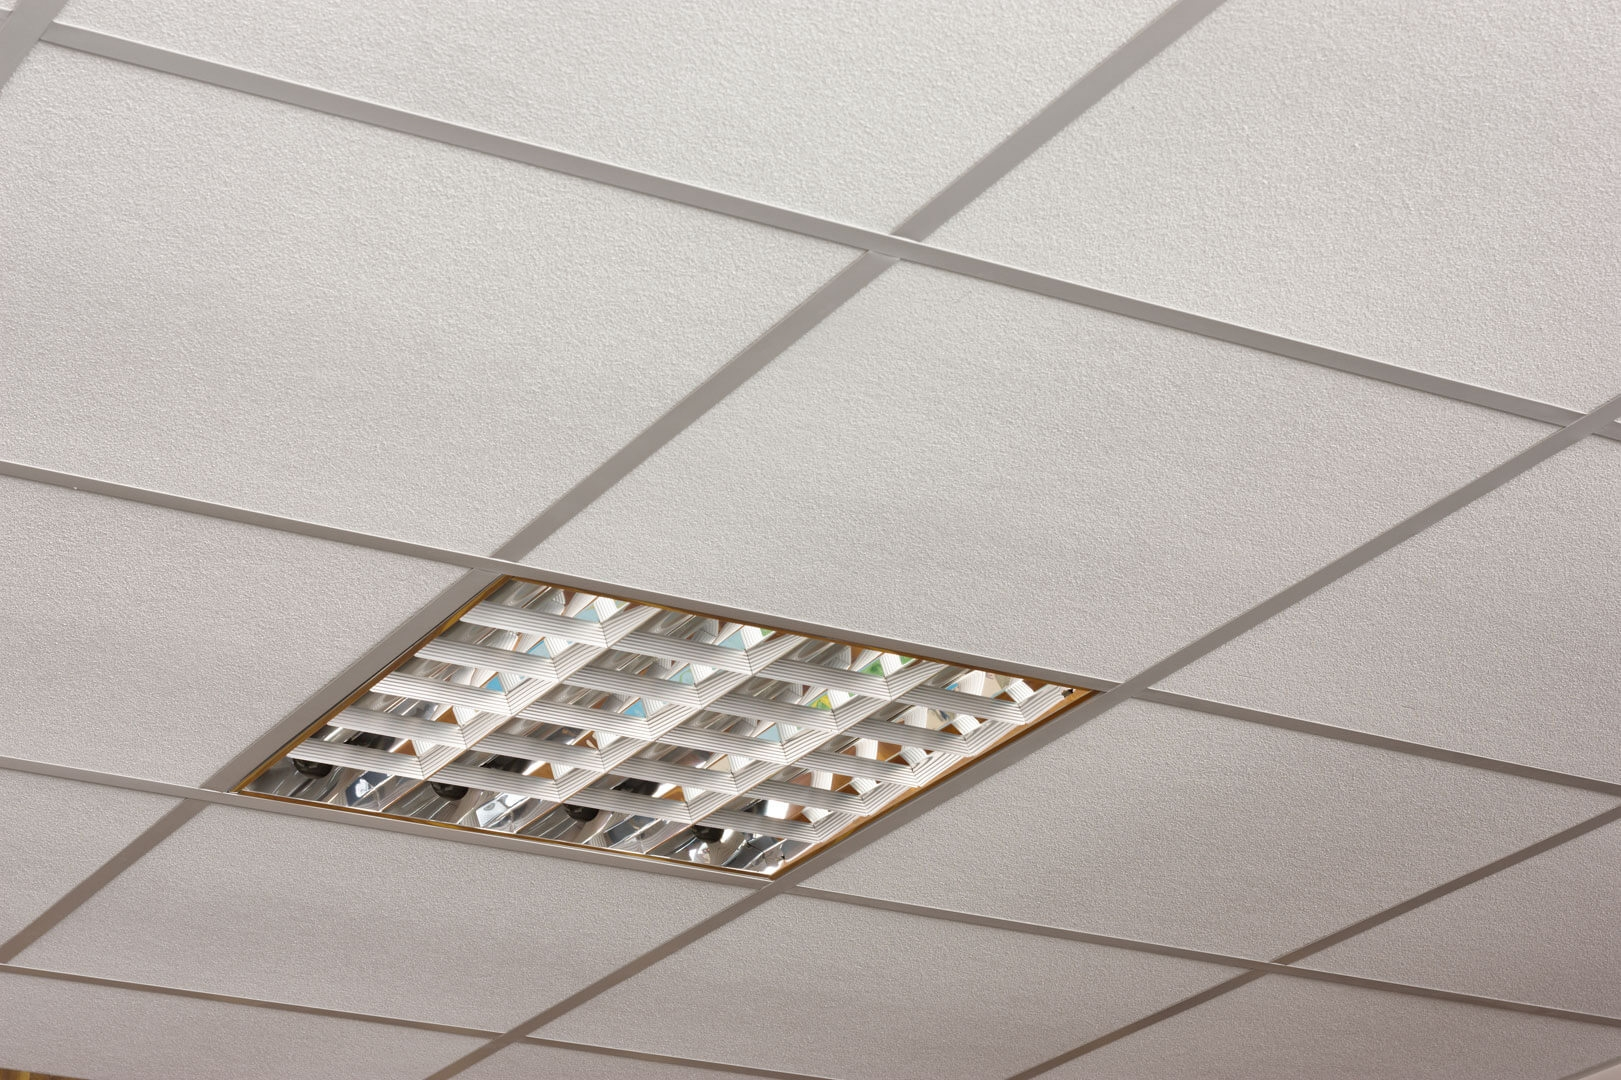 Suspended Ceiling Tiles Pictures